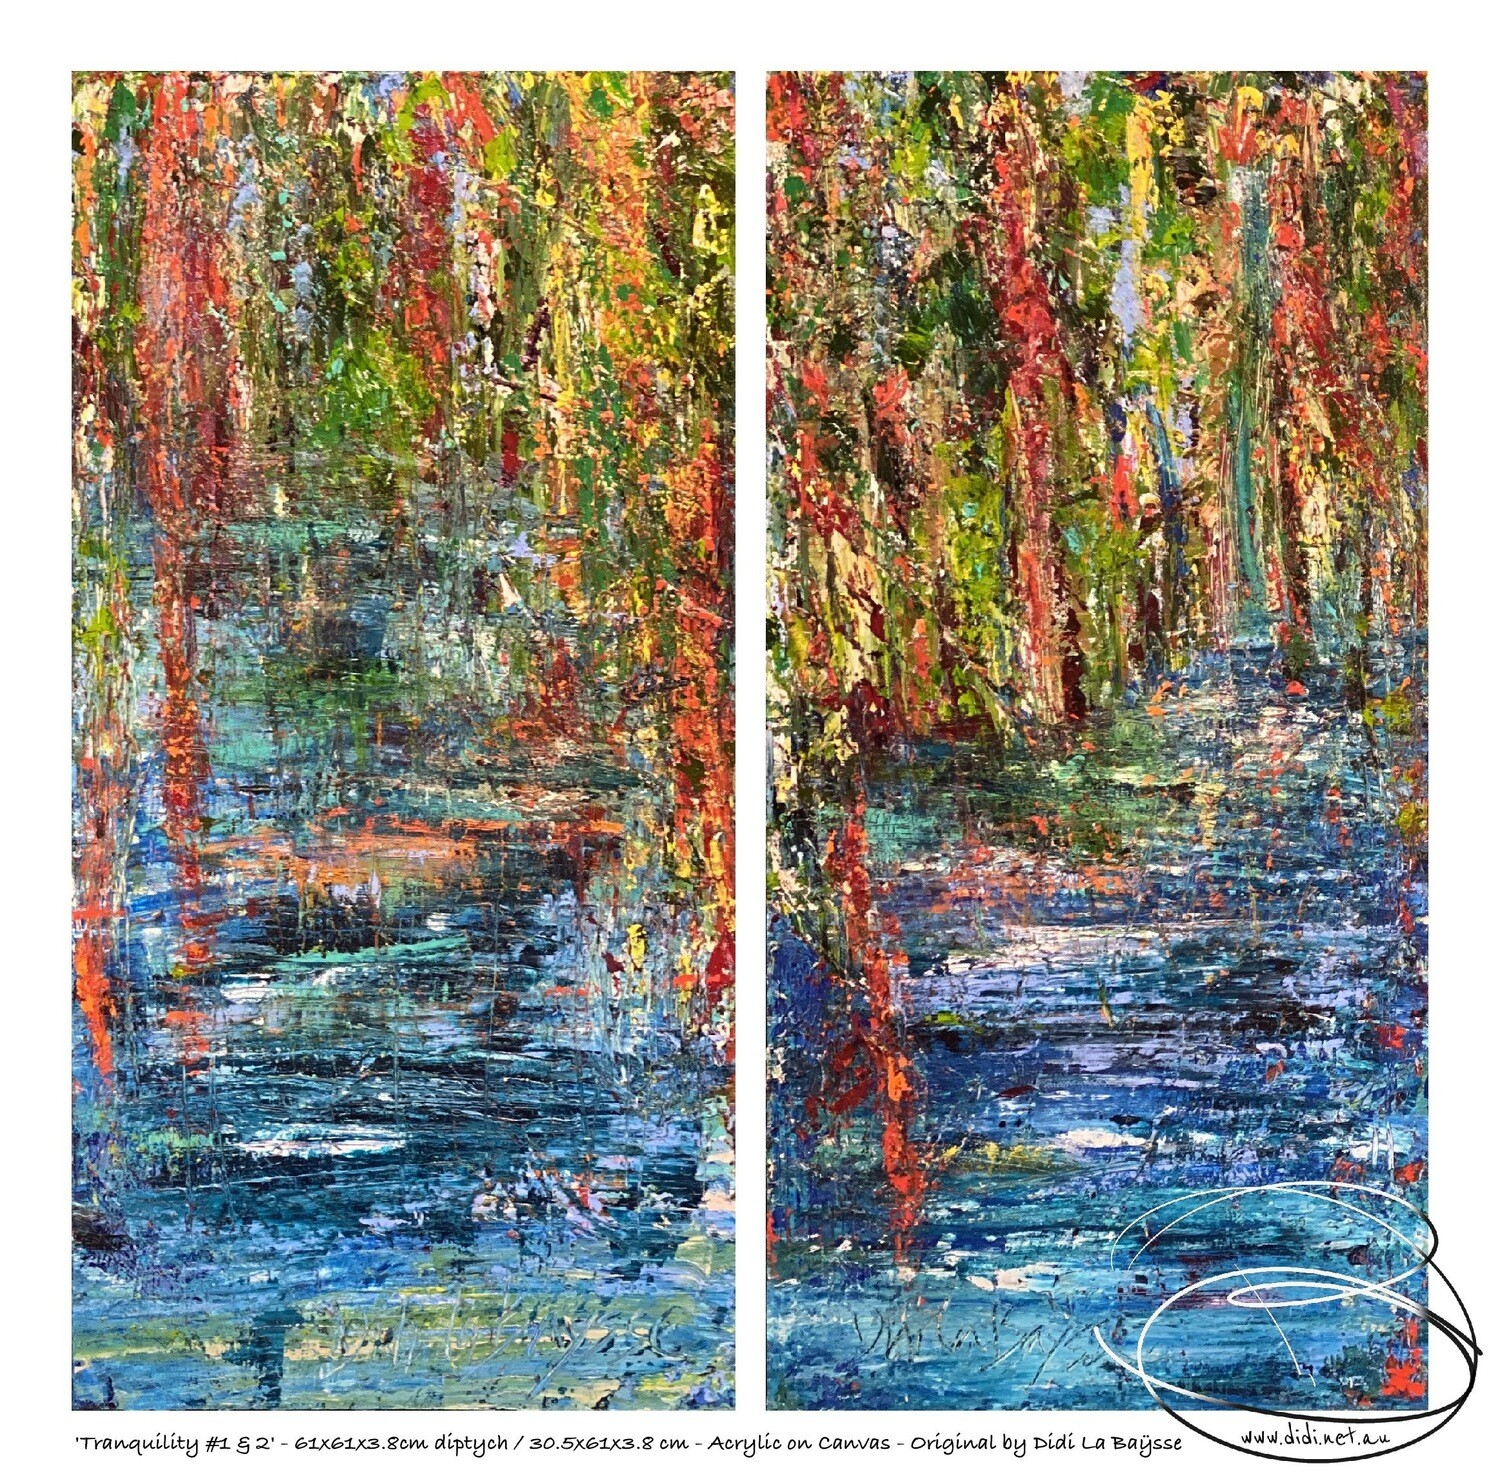 Tranquillity #1 & 2 Diptych